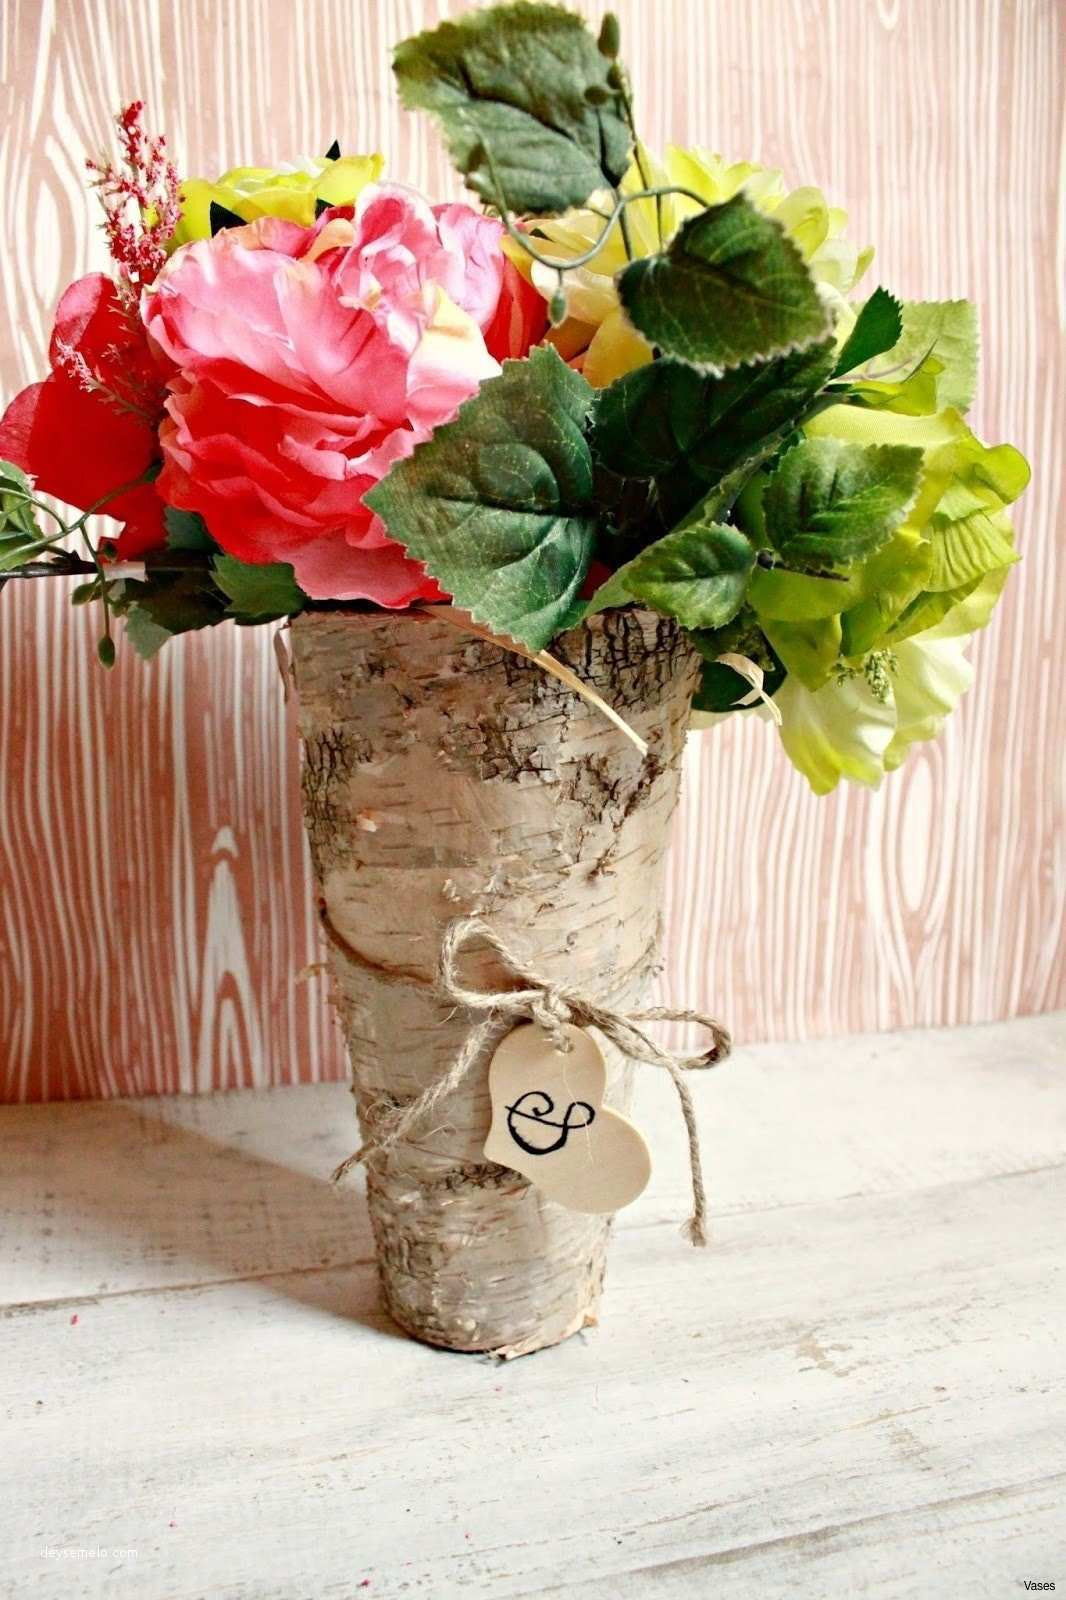 flower vase filler of royal wedding ceremony decorations diy and fall wedding decorations within beautiful wedding ceremony decorations diy with elegant flowers and decorations for weddings flower for wedding